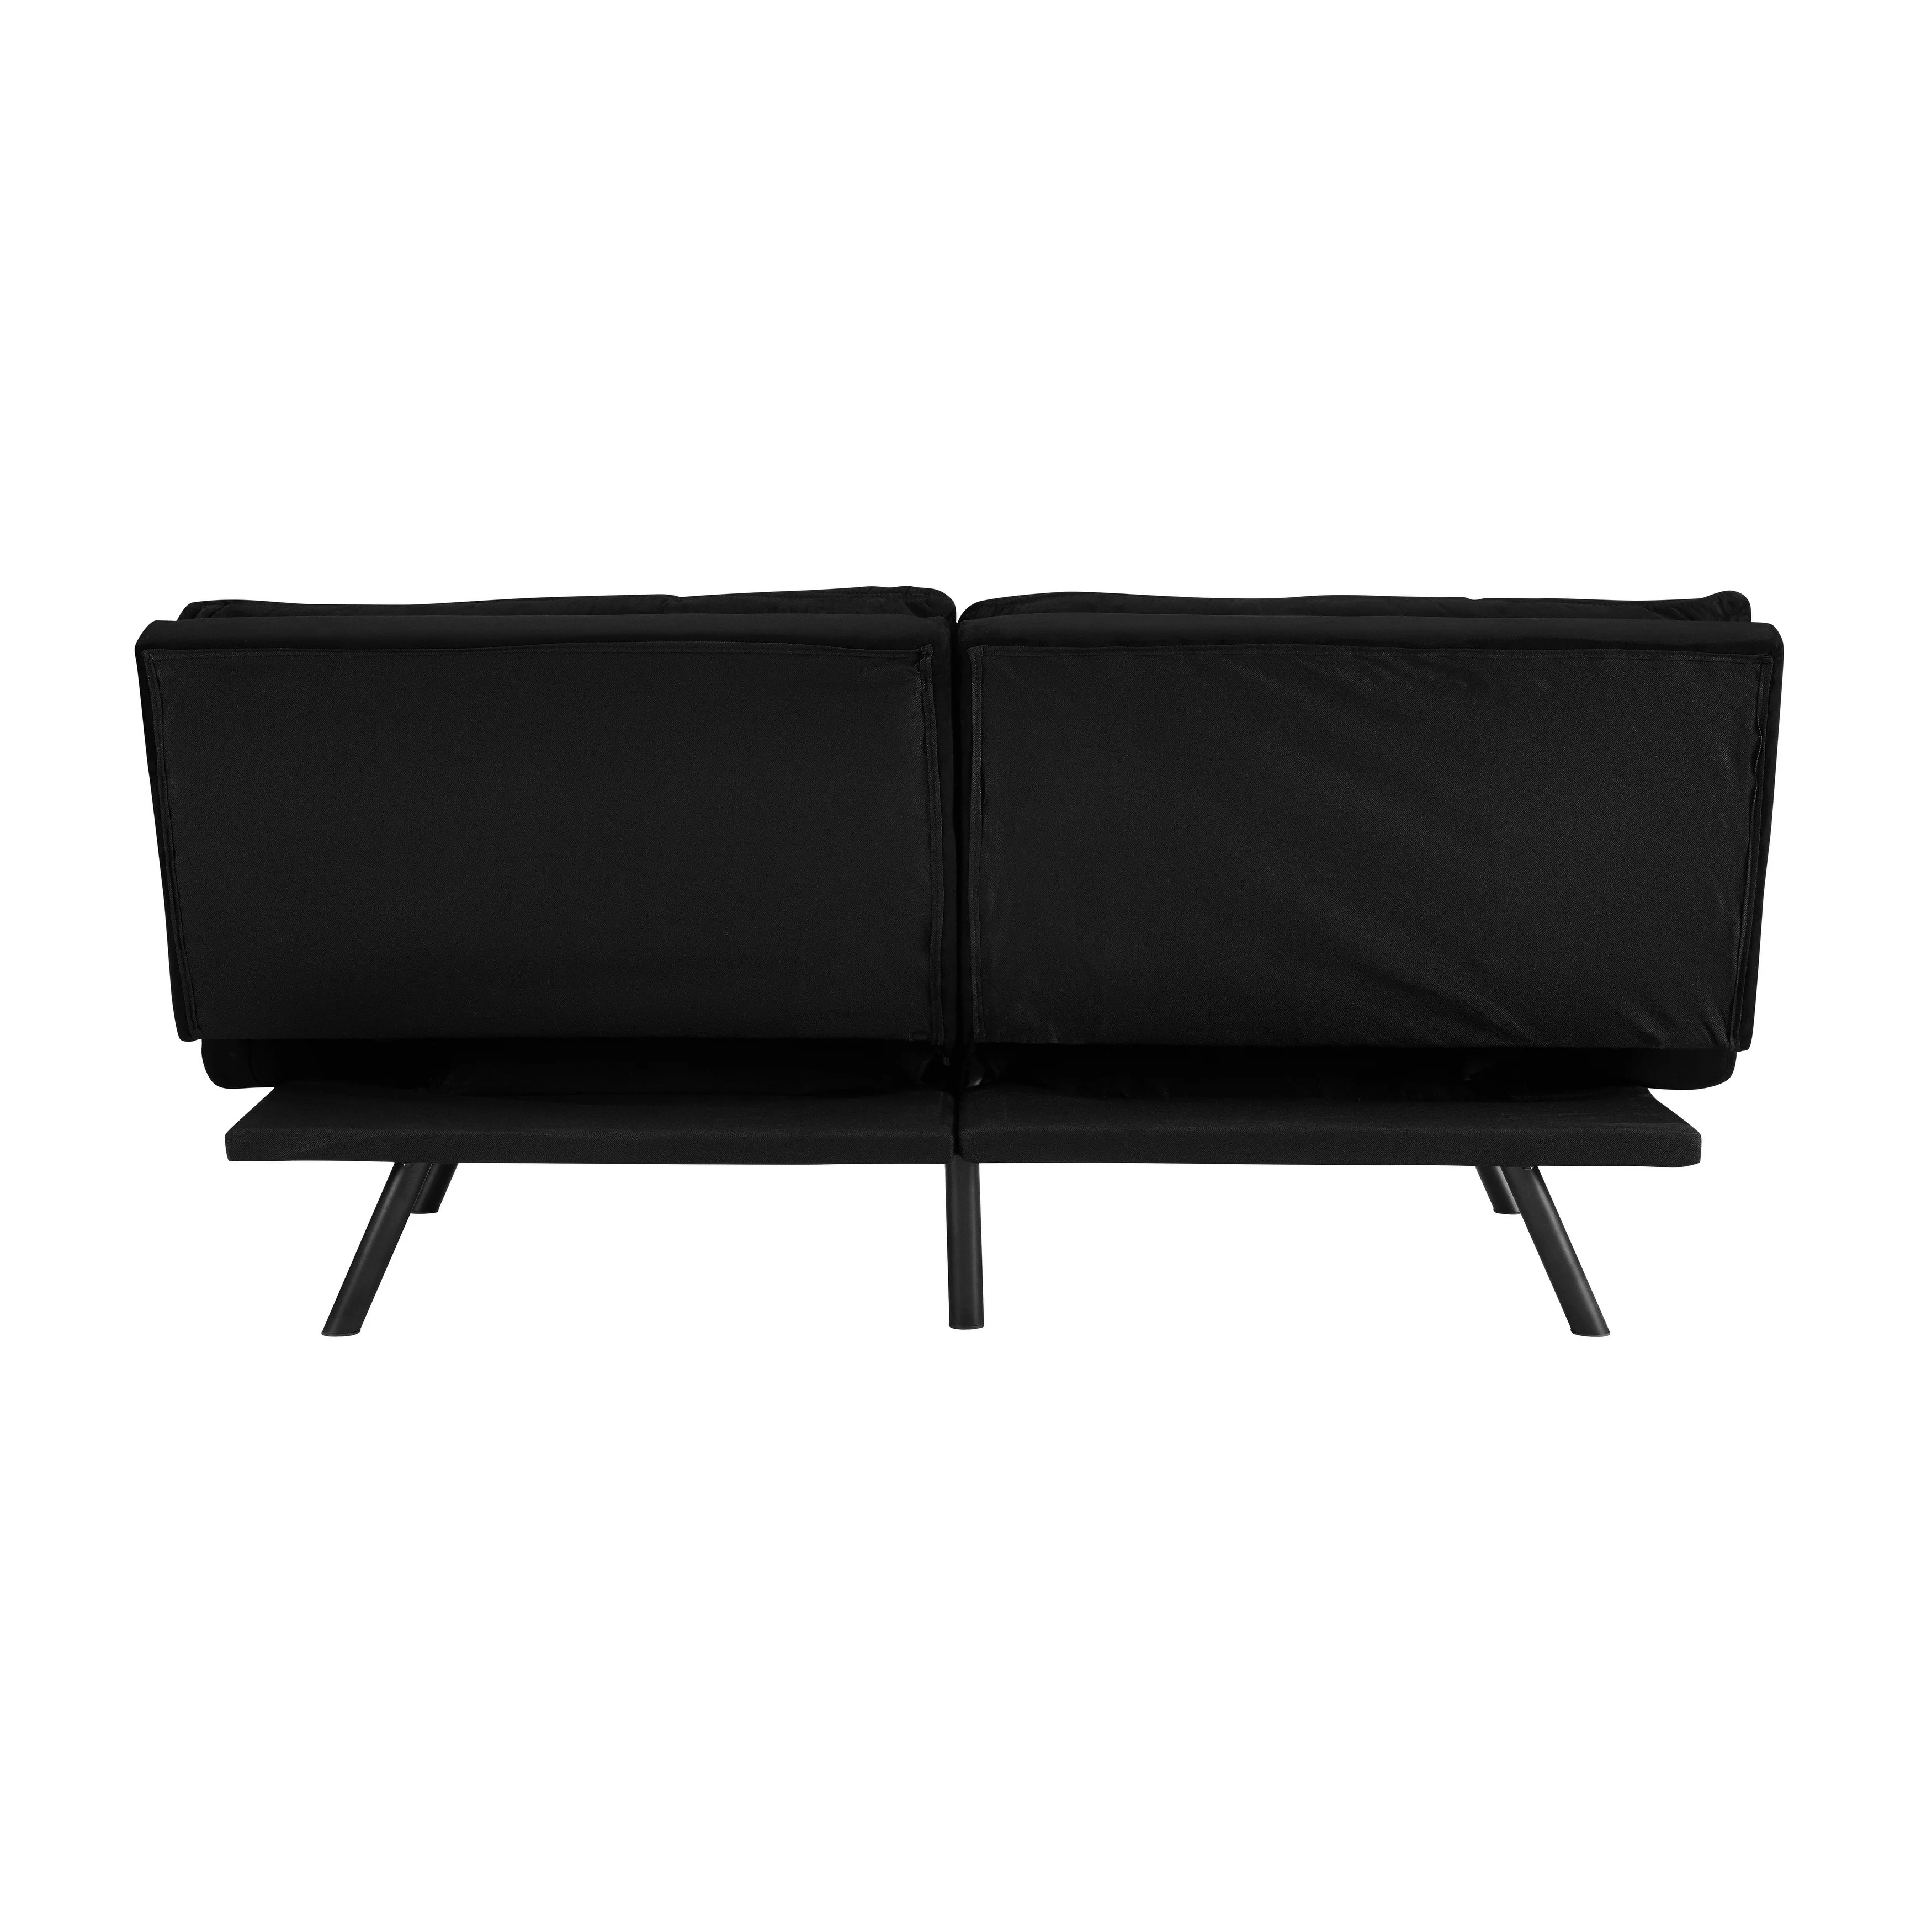 Sofa With Foam Seats Sofas 2 Go Portland Convertible Sofa With Memory Foam Seating Black